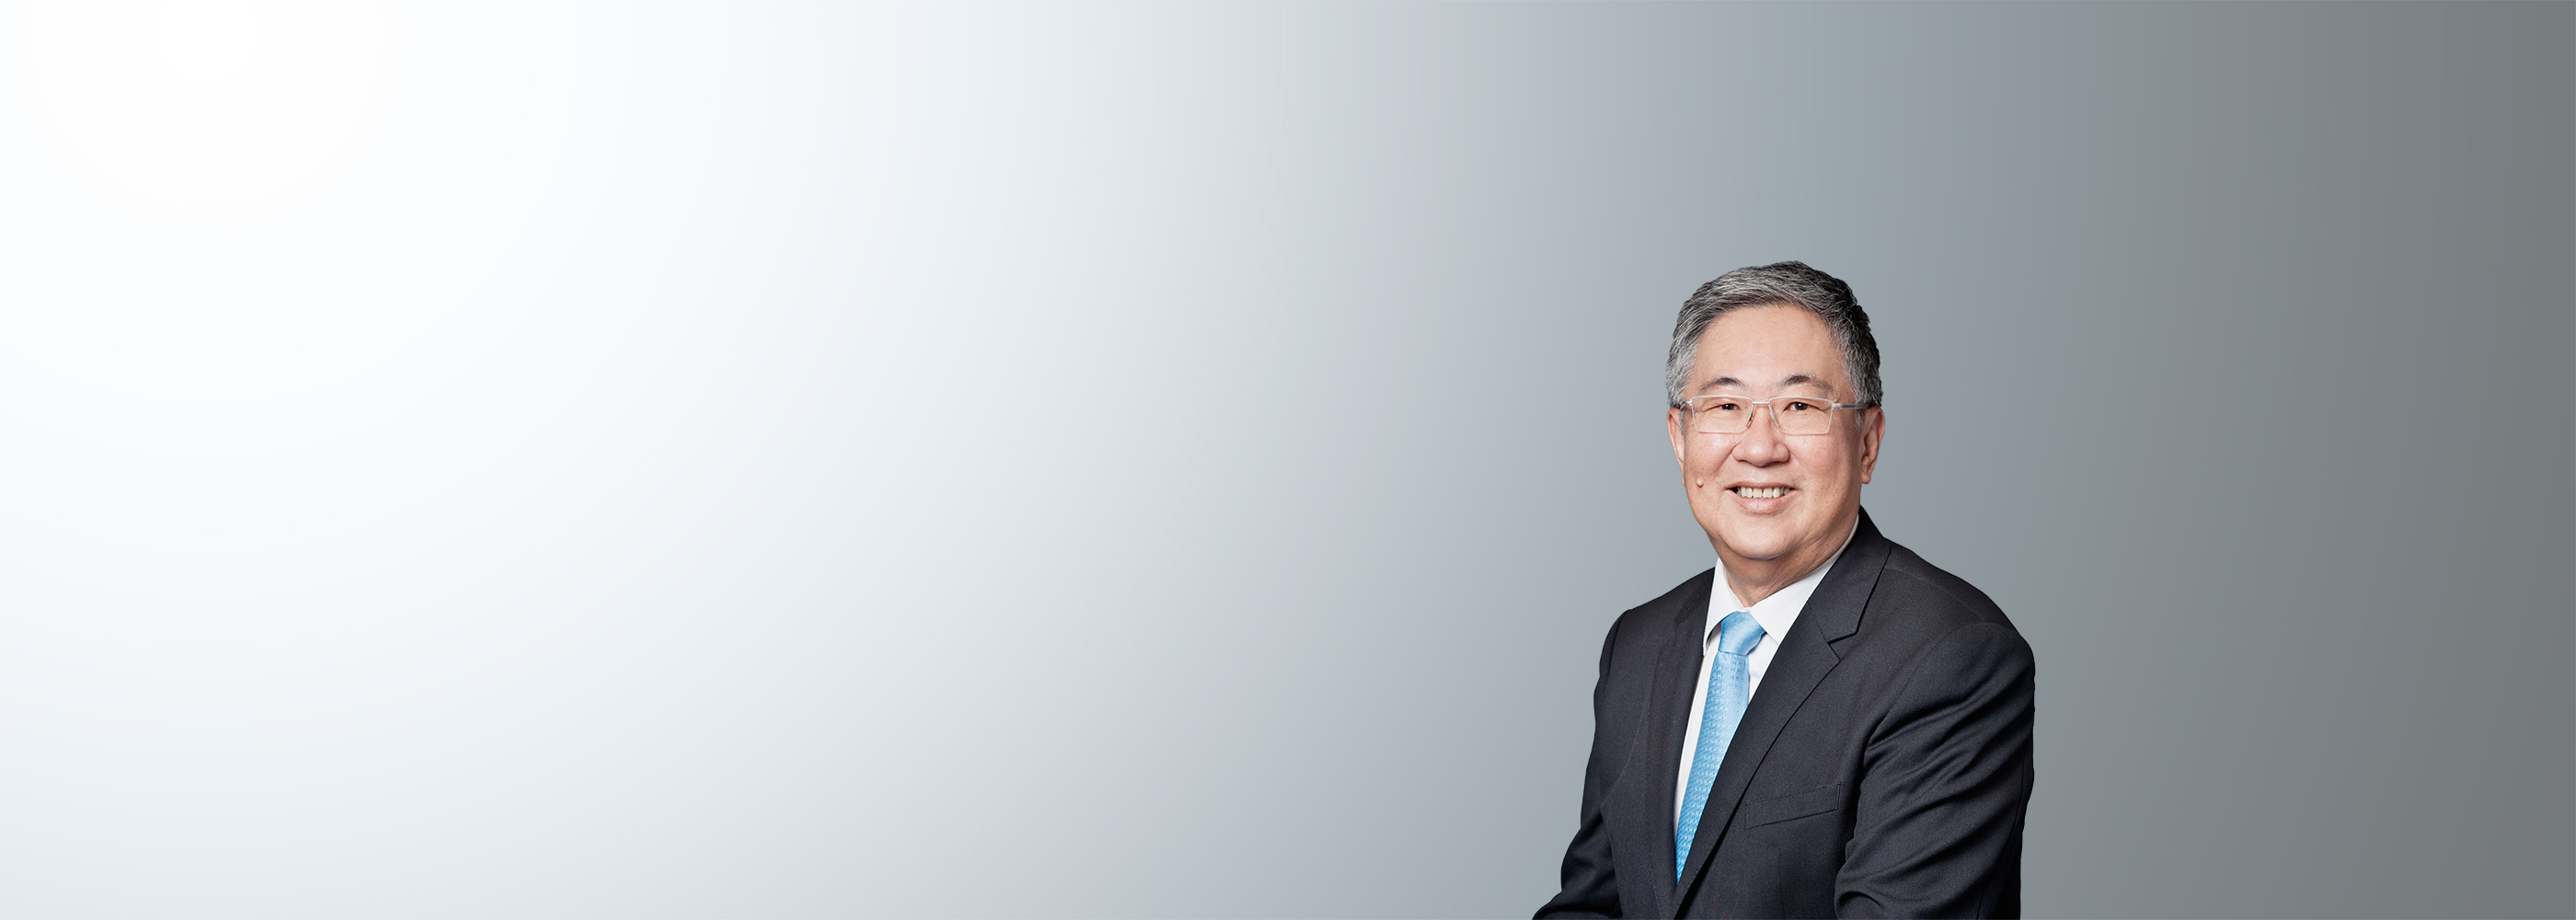 TAN Chee Meng, Senior Counsel